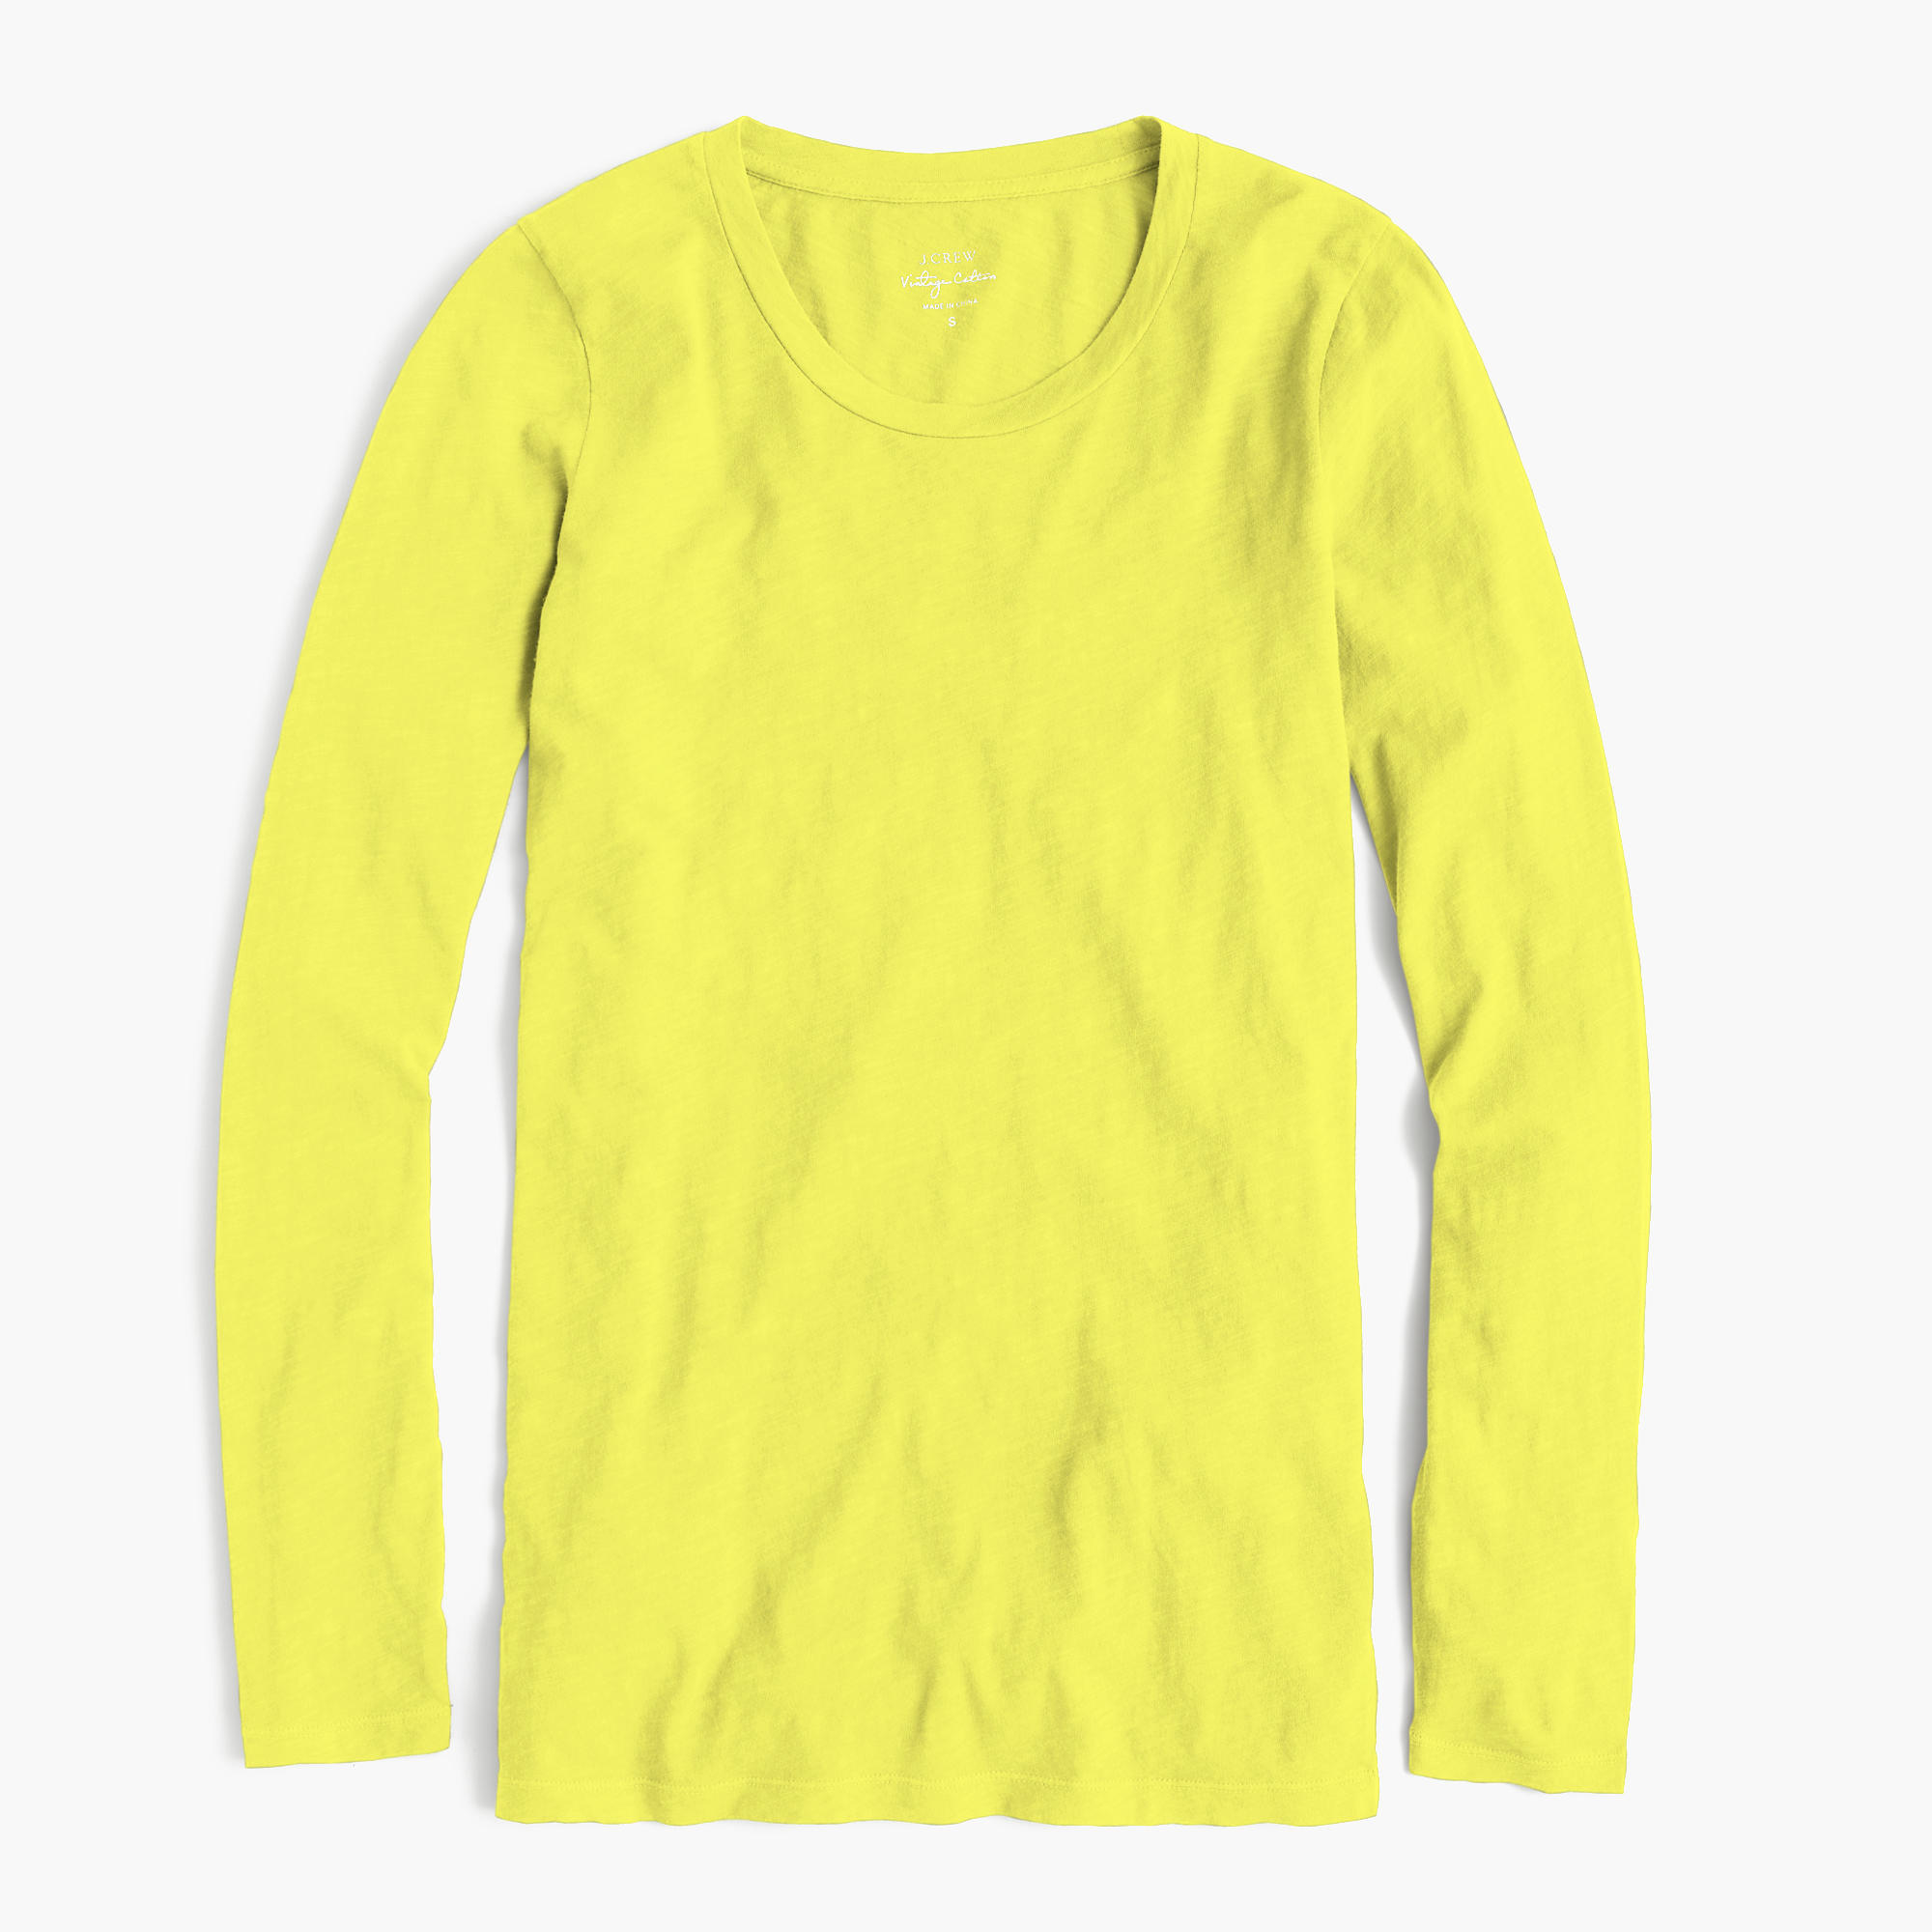 Vintage Cotton Long Sleeve T Shirt In Yellow Neon